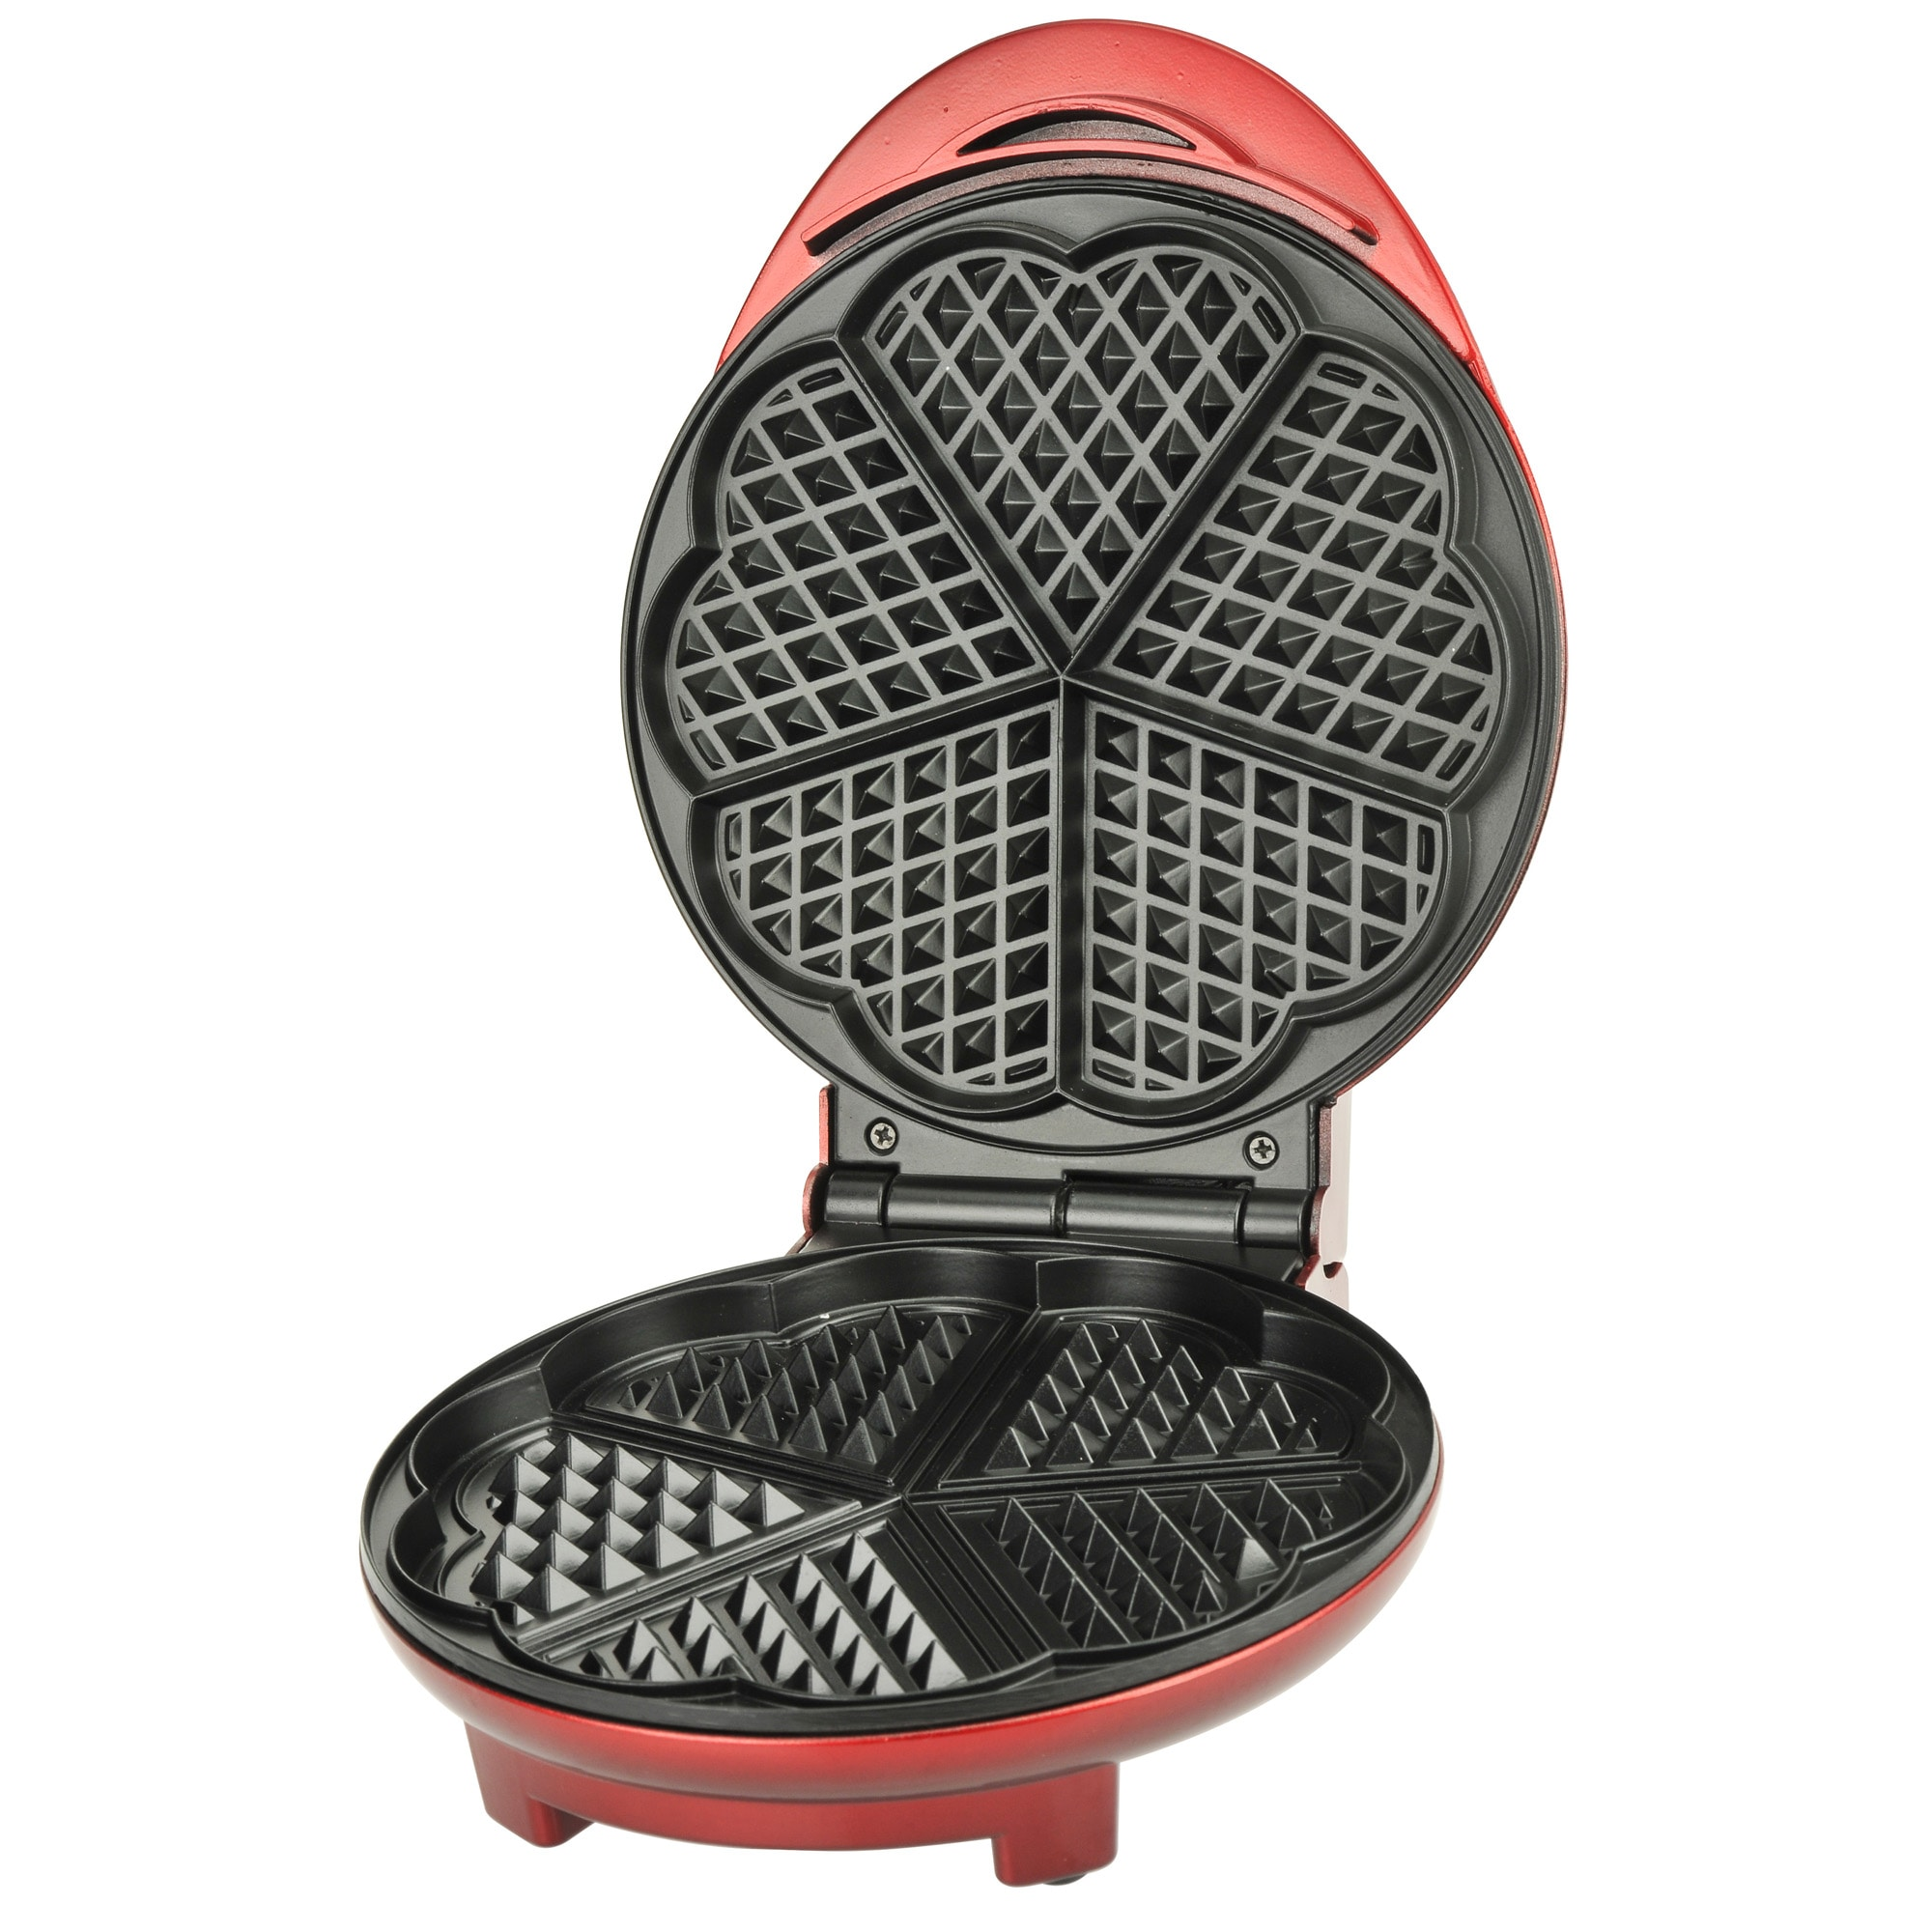 Kalorik Red Heart-shaped Waffle Maker at Sears.com